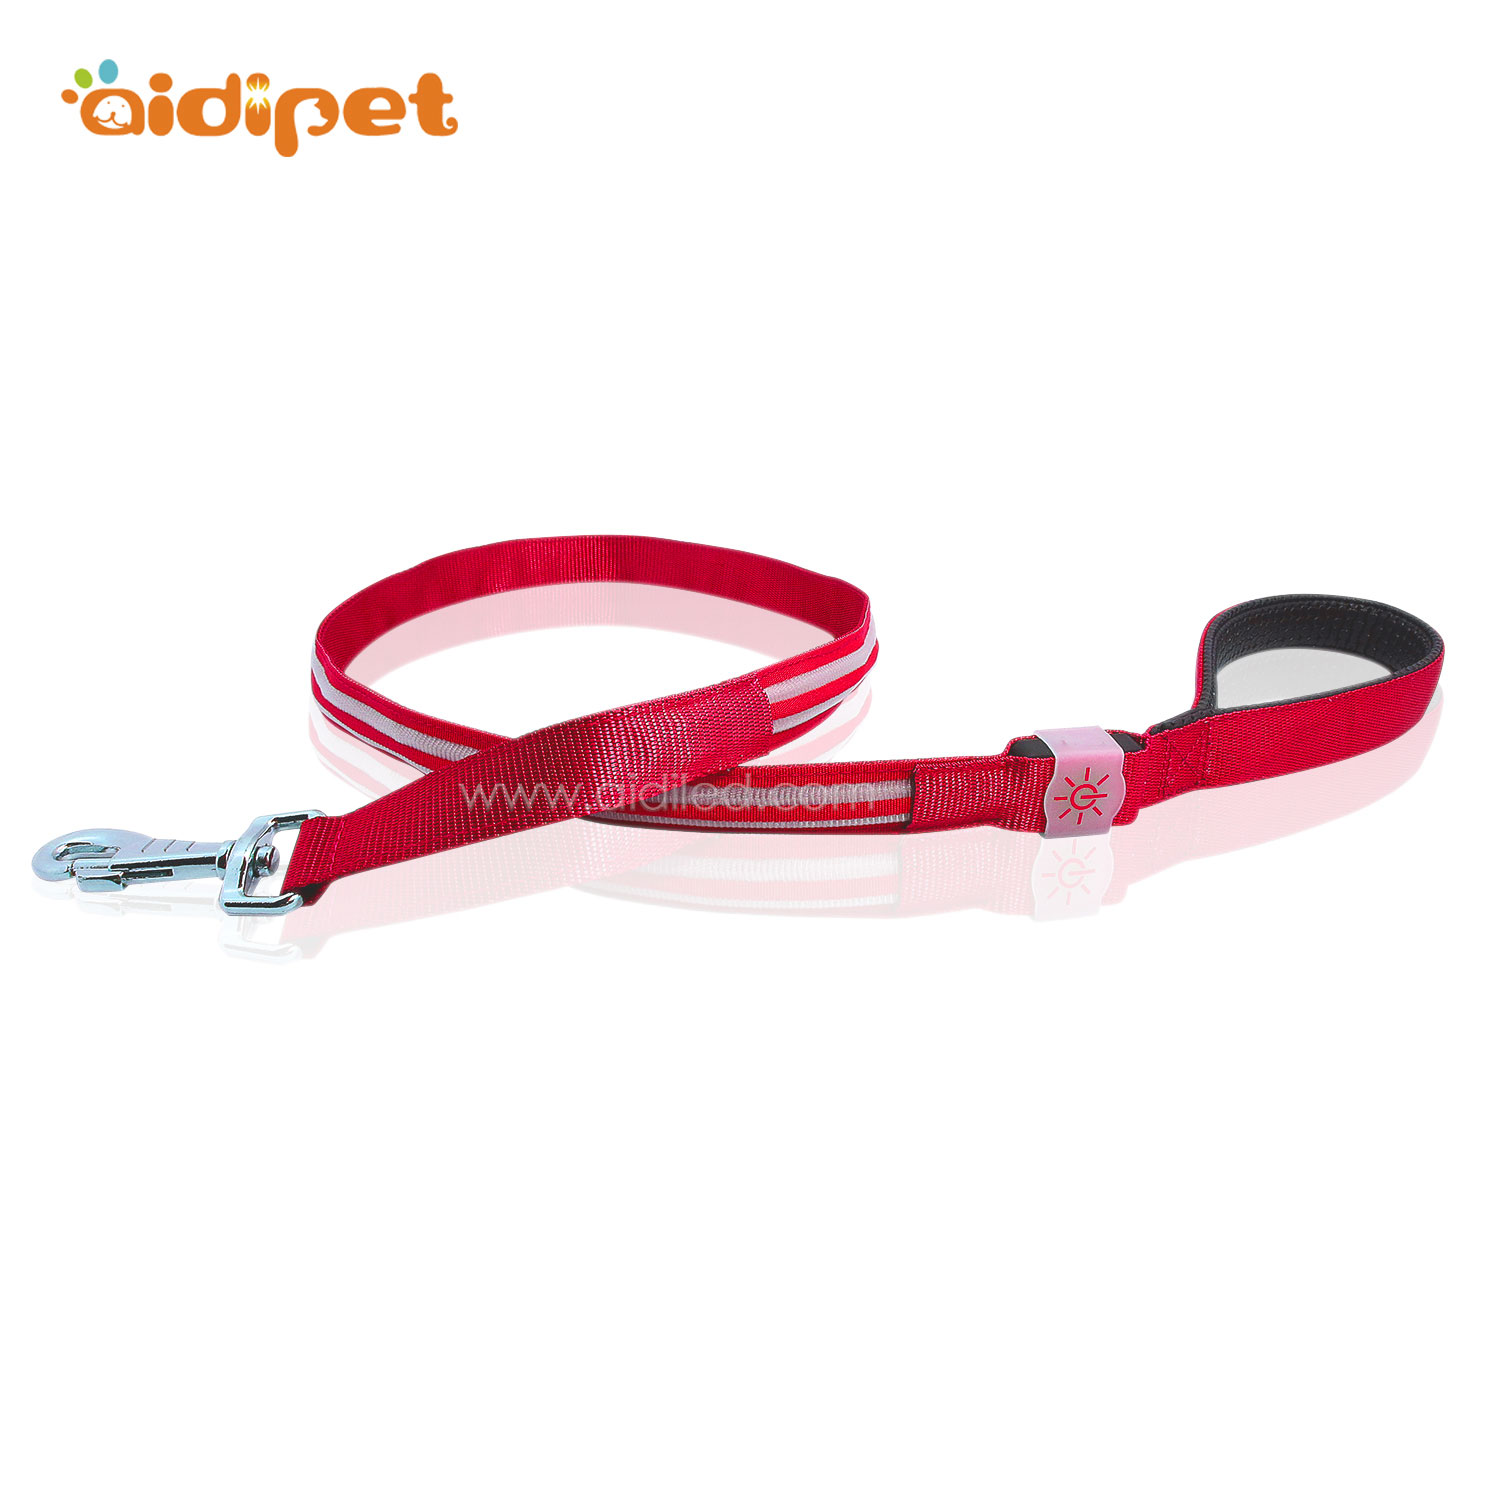 AIDI-Led Dog Leash with Fashlight AIDI-L3